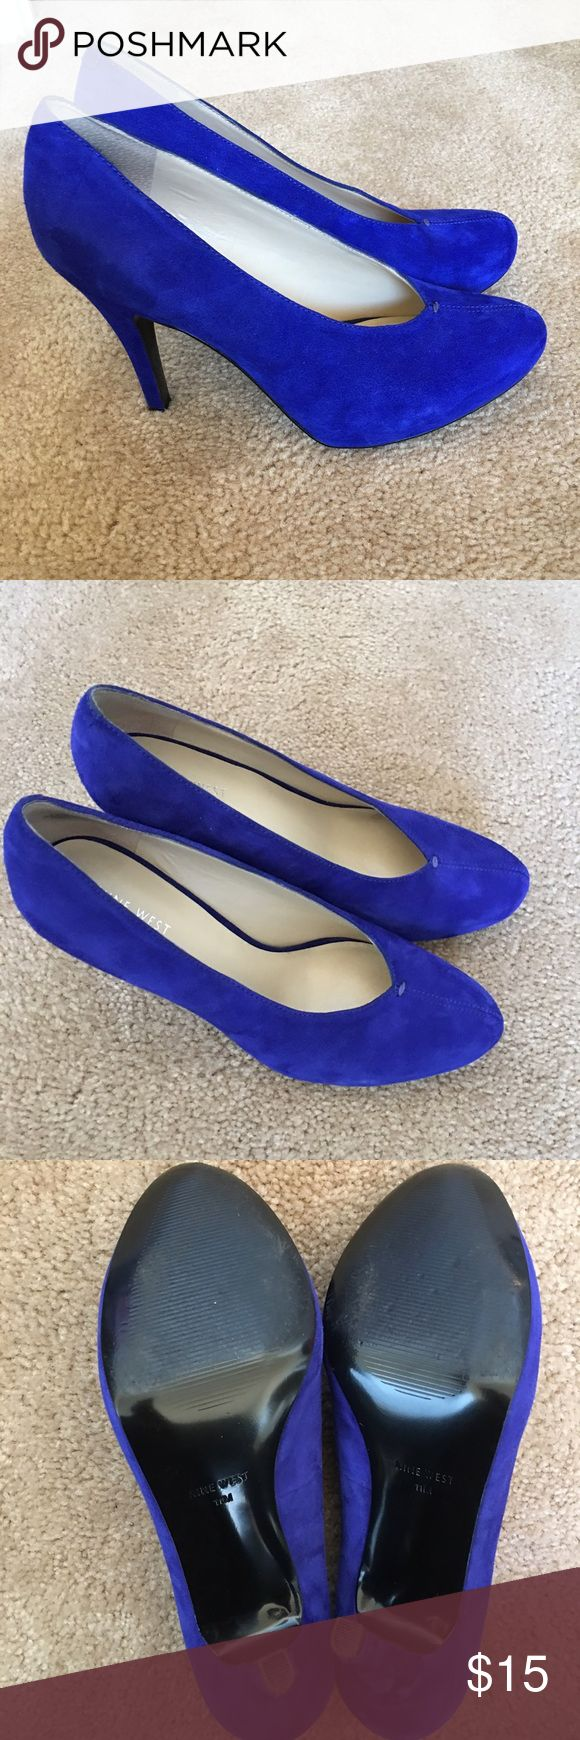 "Nine West Blue Suede Rounded Toe Pump Beautiful blue suede pump. Encased platform. 4"" Heel. Rounded Toe makes long feet look small👍🏾 Worn twice. Nine West Shoes Heels"